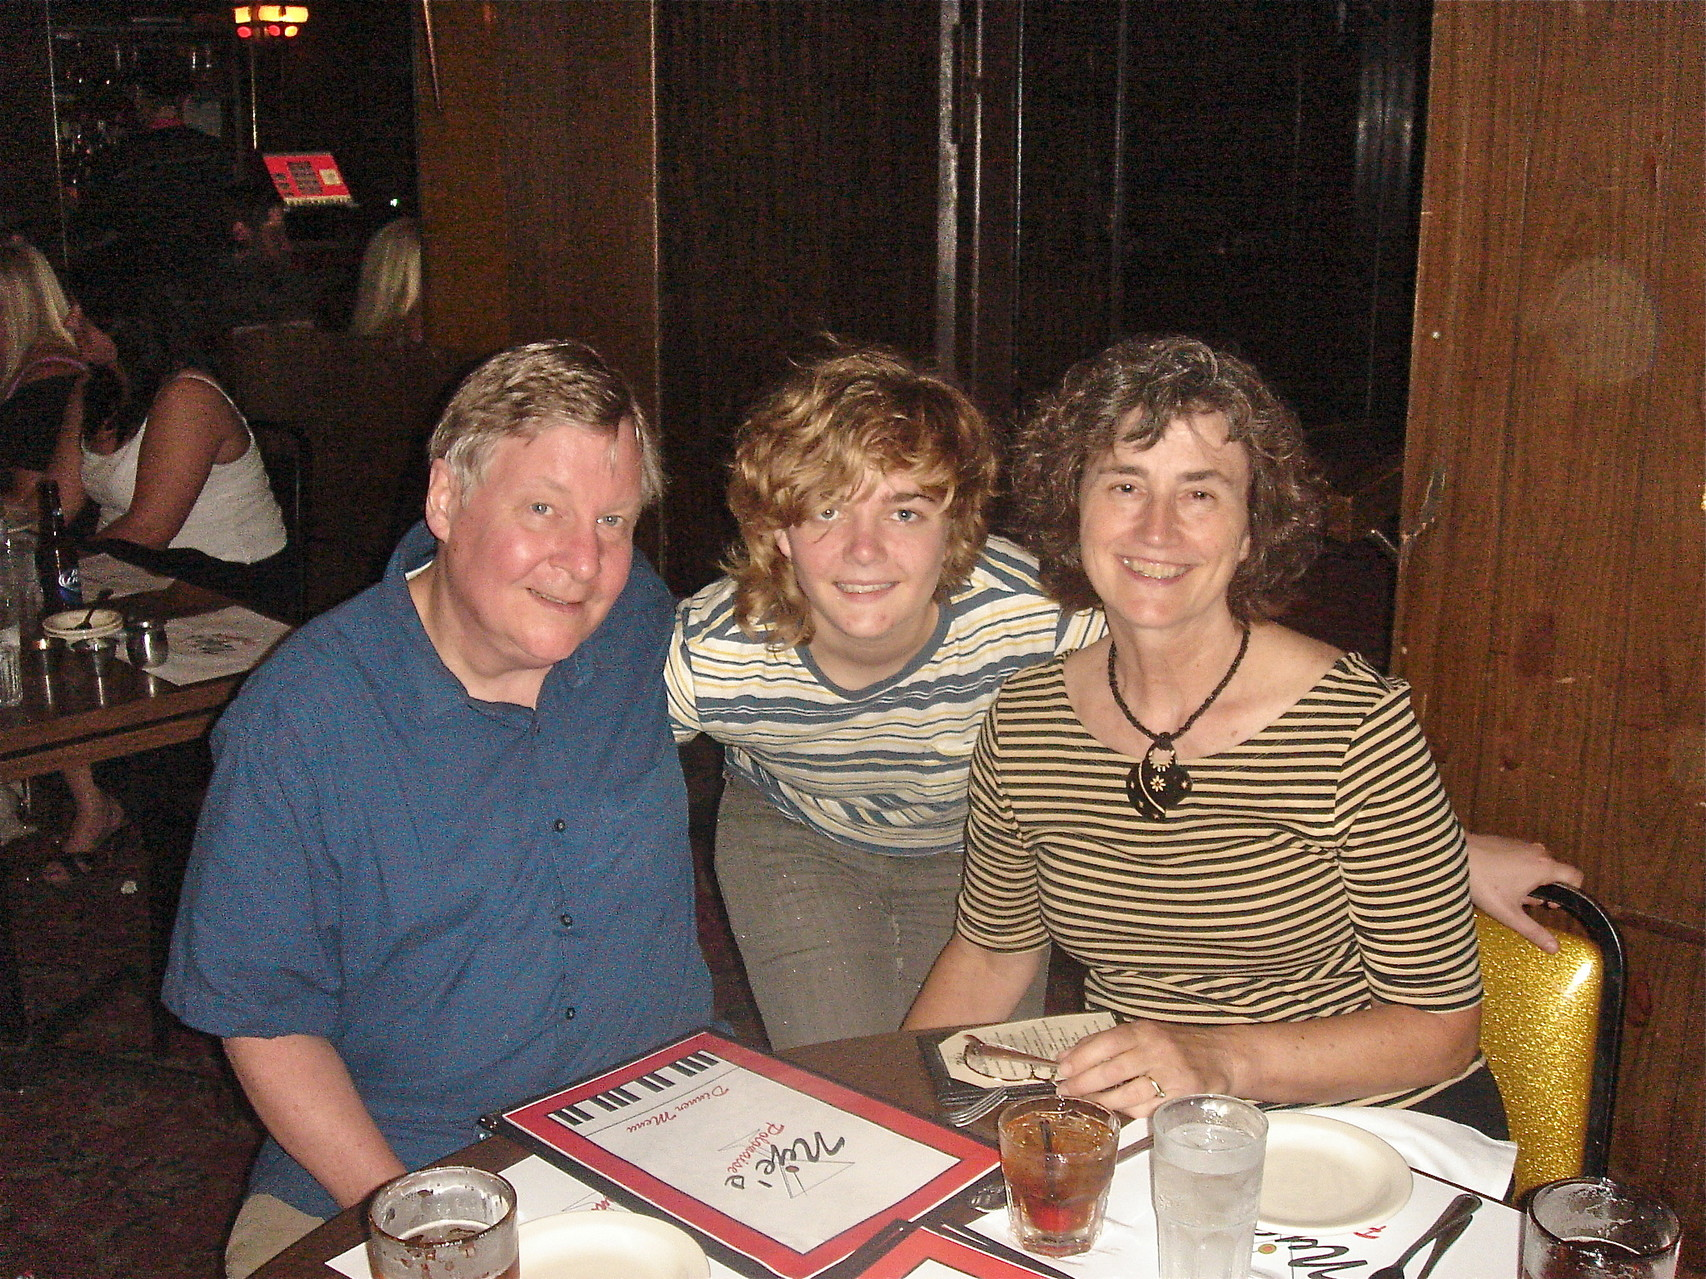 John, Kathleen, & Ann (Wagner) Ackerman; we also celebrated Kathleen's college graduation.